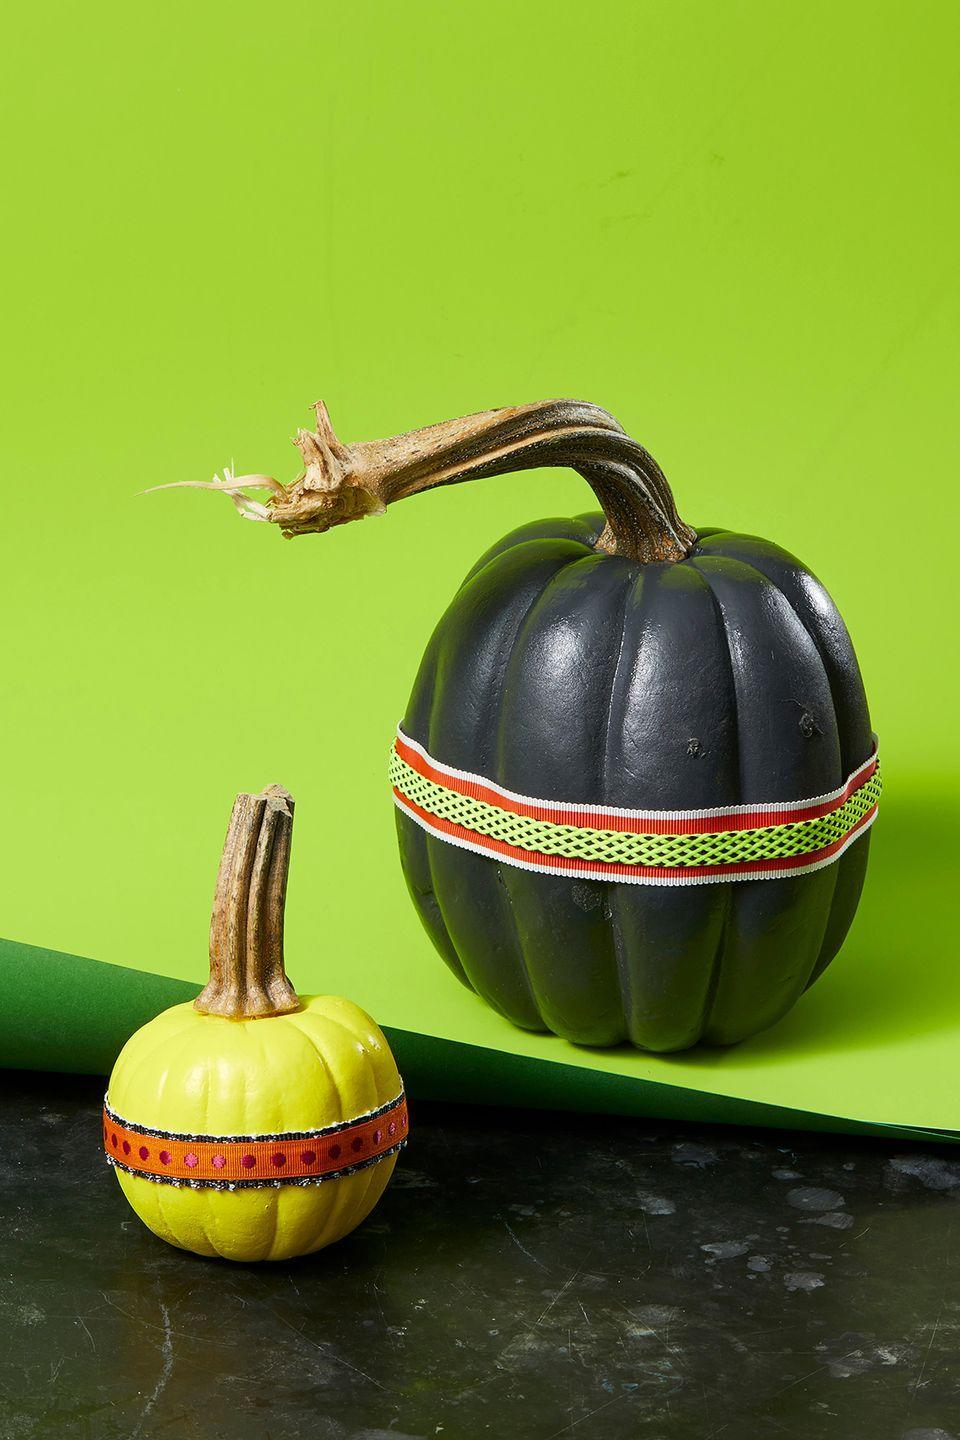 "<p>Adding personality to your pumpkins can be as simple as cutting some ribbon. Start by painting your pumpkin (or leave it natural for a more rustic look). Then, cut a length of ribbon or trim to fit the width of a pumpkin. To finish, just attach it with a few drops of hot glue. If you're feeling creative, layer ribbons and trim for an even more custom look.</p><p><a class=""link rapid-noclick-resp"" href=""https://www.amazon.com/Burlap-Ribbon-White-Lace-Ribbons/dp/B074QR9JCD/?tag=syn-yahoo-20&ascsubtag=%5Bartid%7C10055.g.1714%5Bsrc%7Cyahoo-us"" rel=""nofollow noopener"" target=""_blank"" data-ylk=""slk:SHOP RIBBON"">SHOP RIBBON </a></p>"